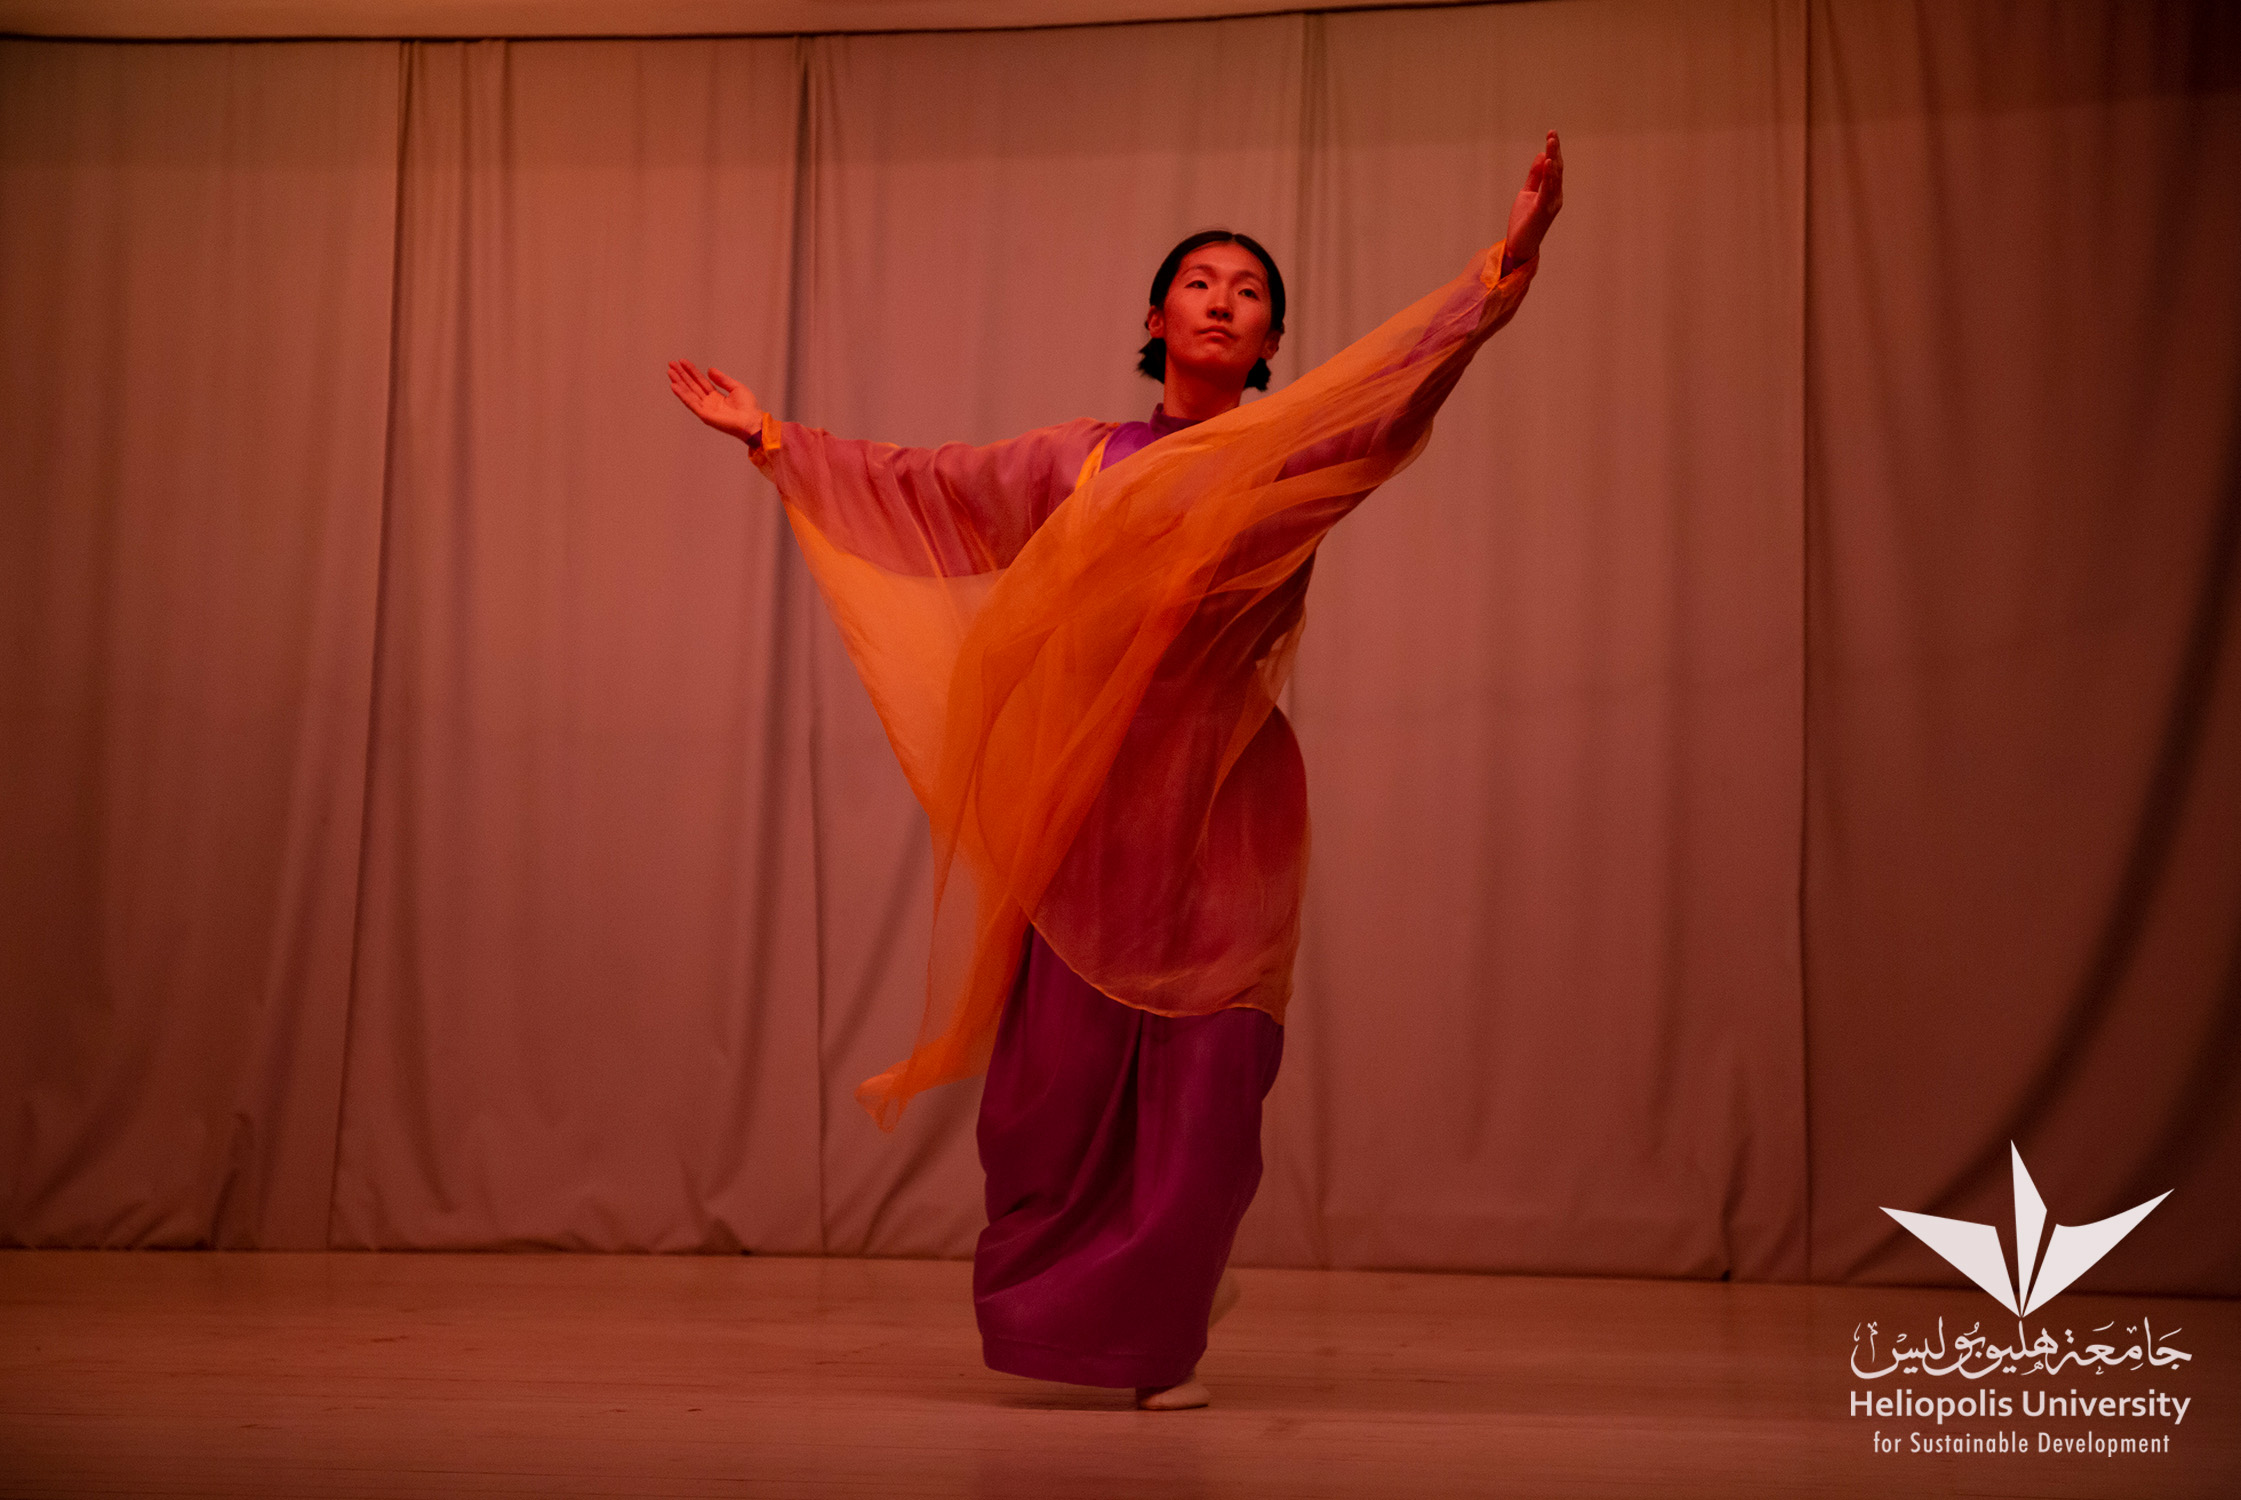 Moonlight-Eurythmy-Space of Culture6